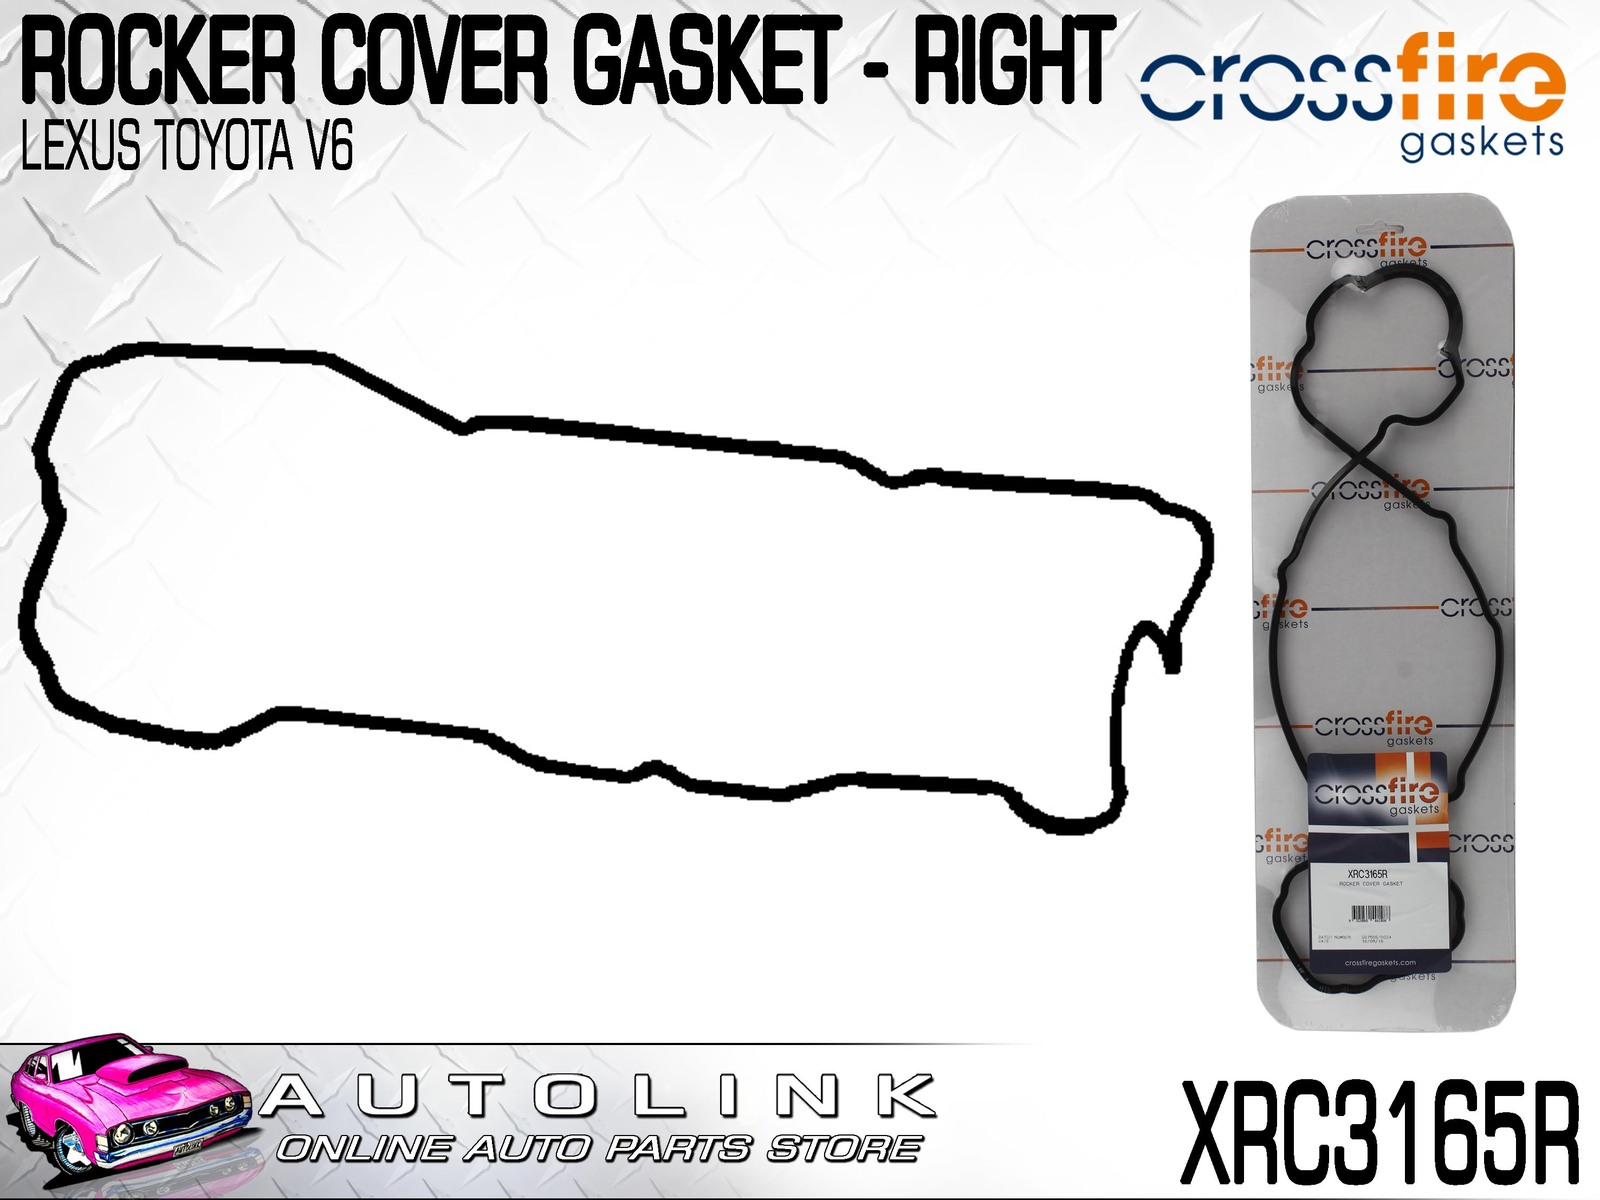 hight resolution of details about rocker cover gasket right side toyota kluger mcu28 3mz fe v6 2003 07 xrc3165r